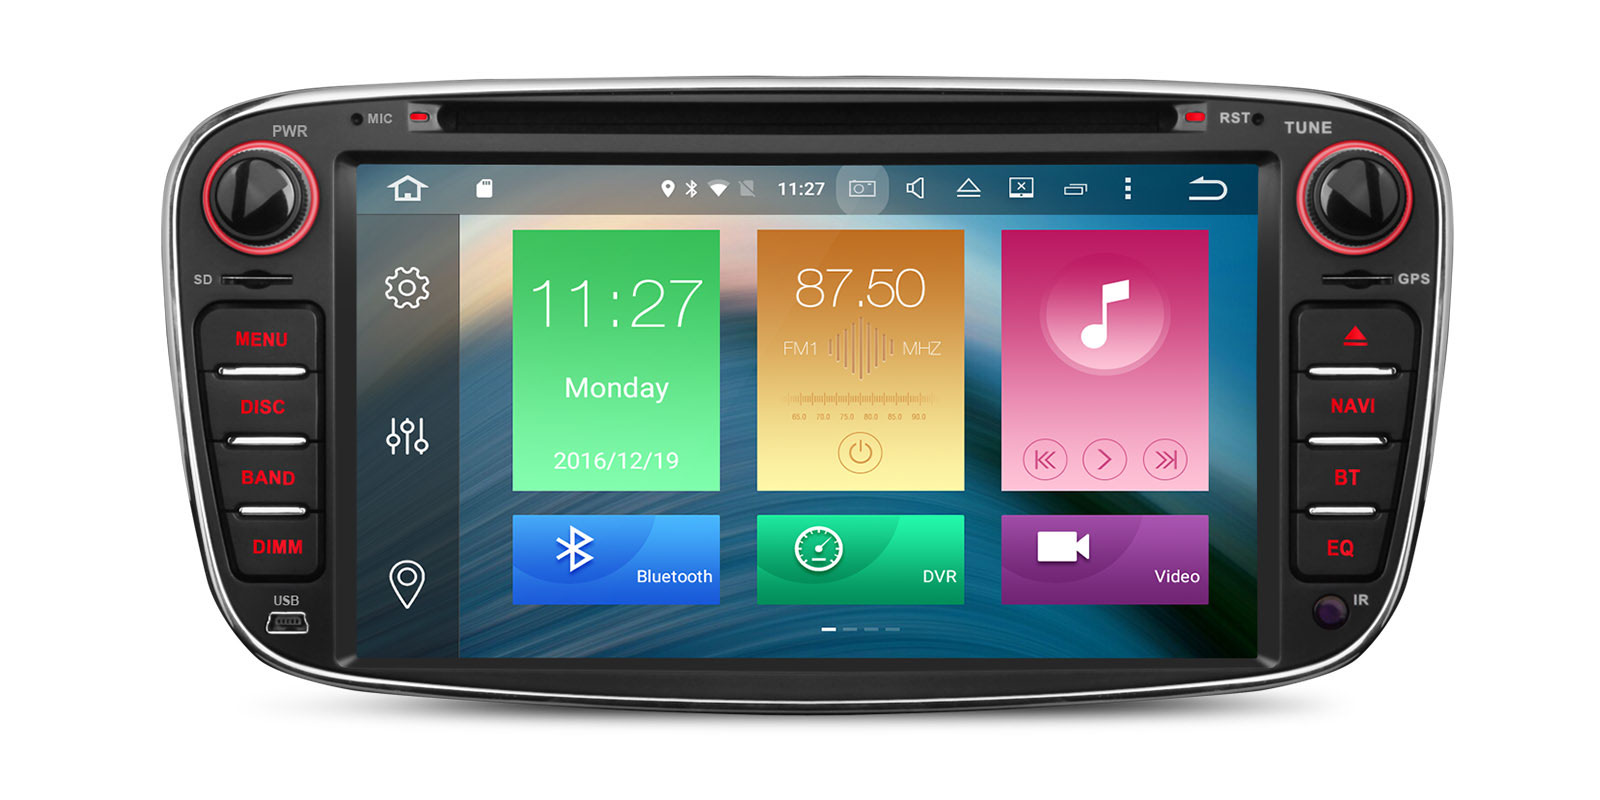 pb76fsfap-b-1 - Android 6.0 octa-core, double din car stereo